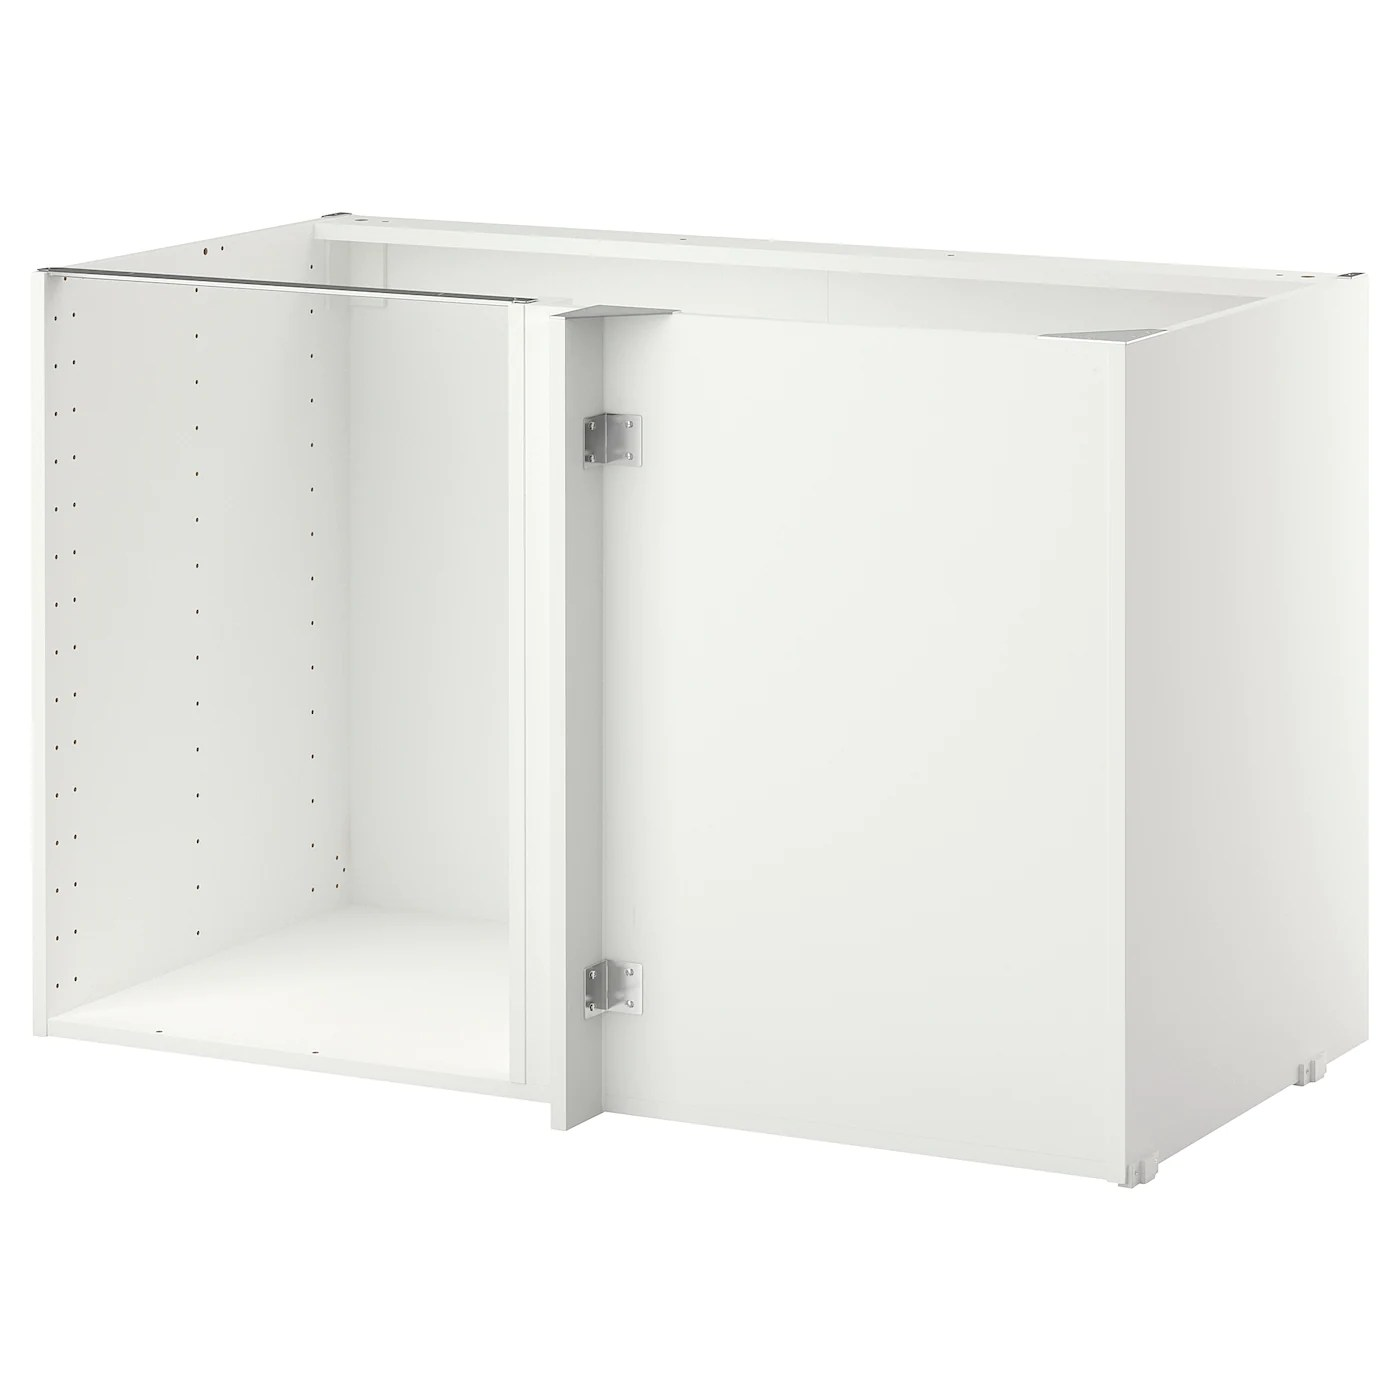 metod structure element bas d angle blanc 128x68x80 cm